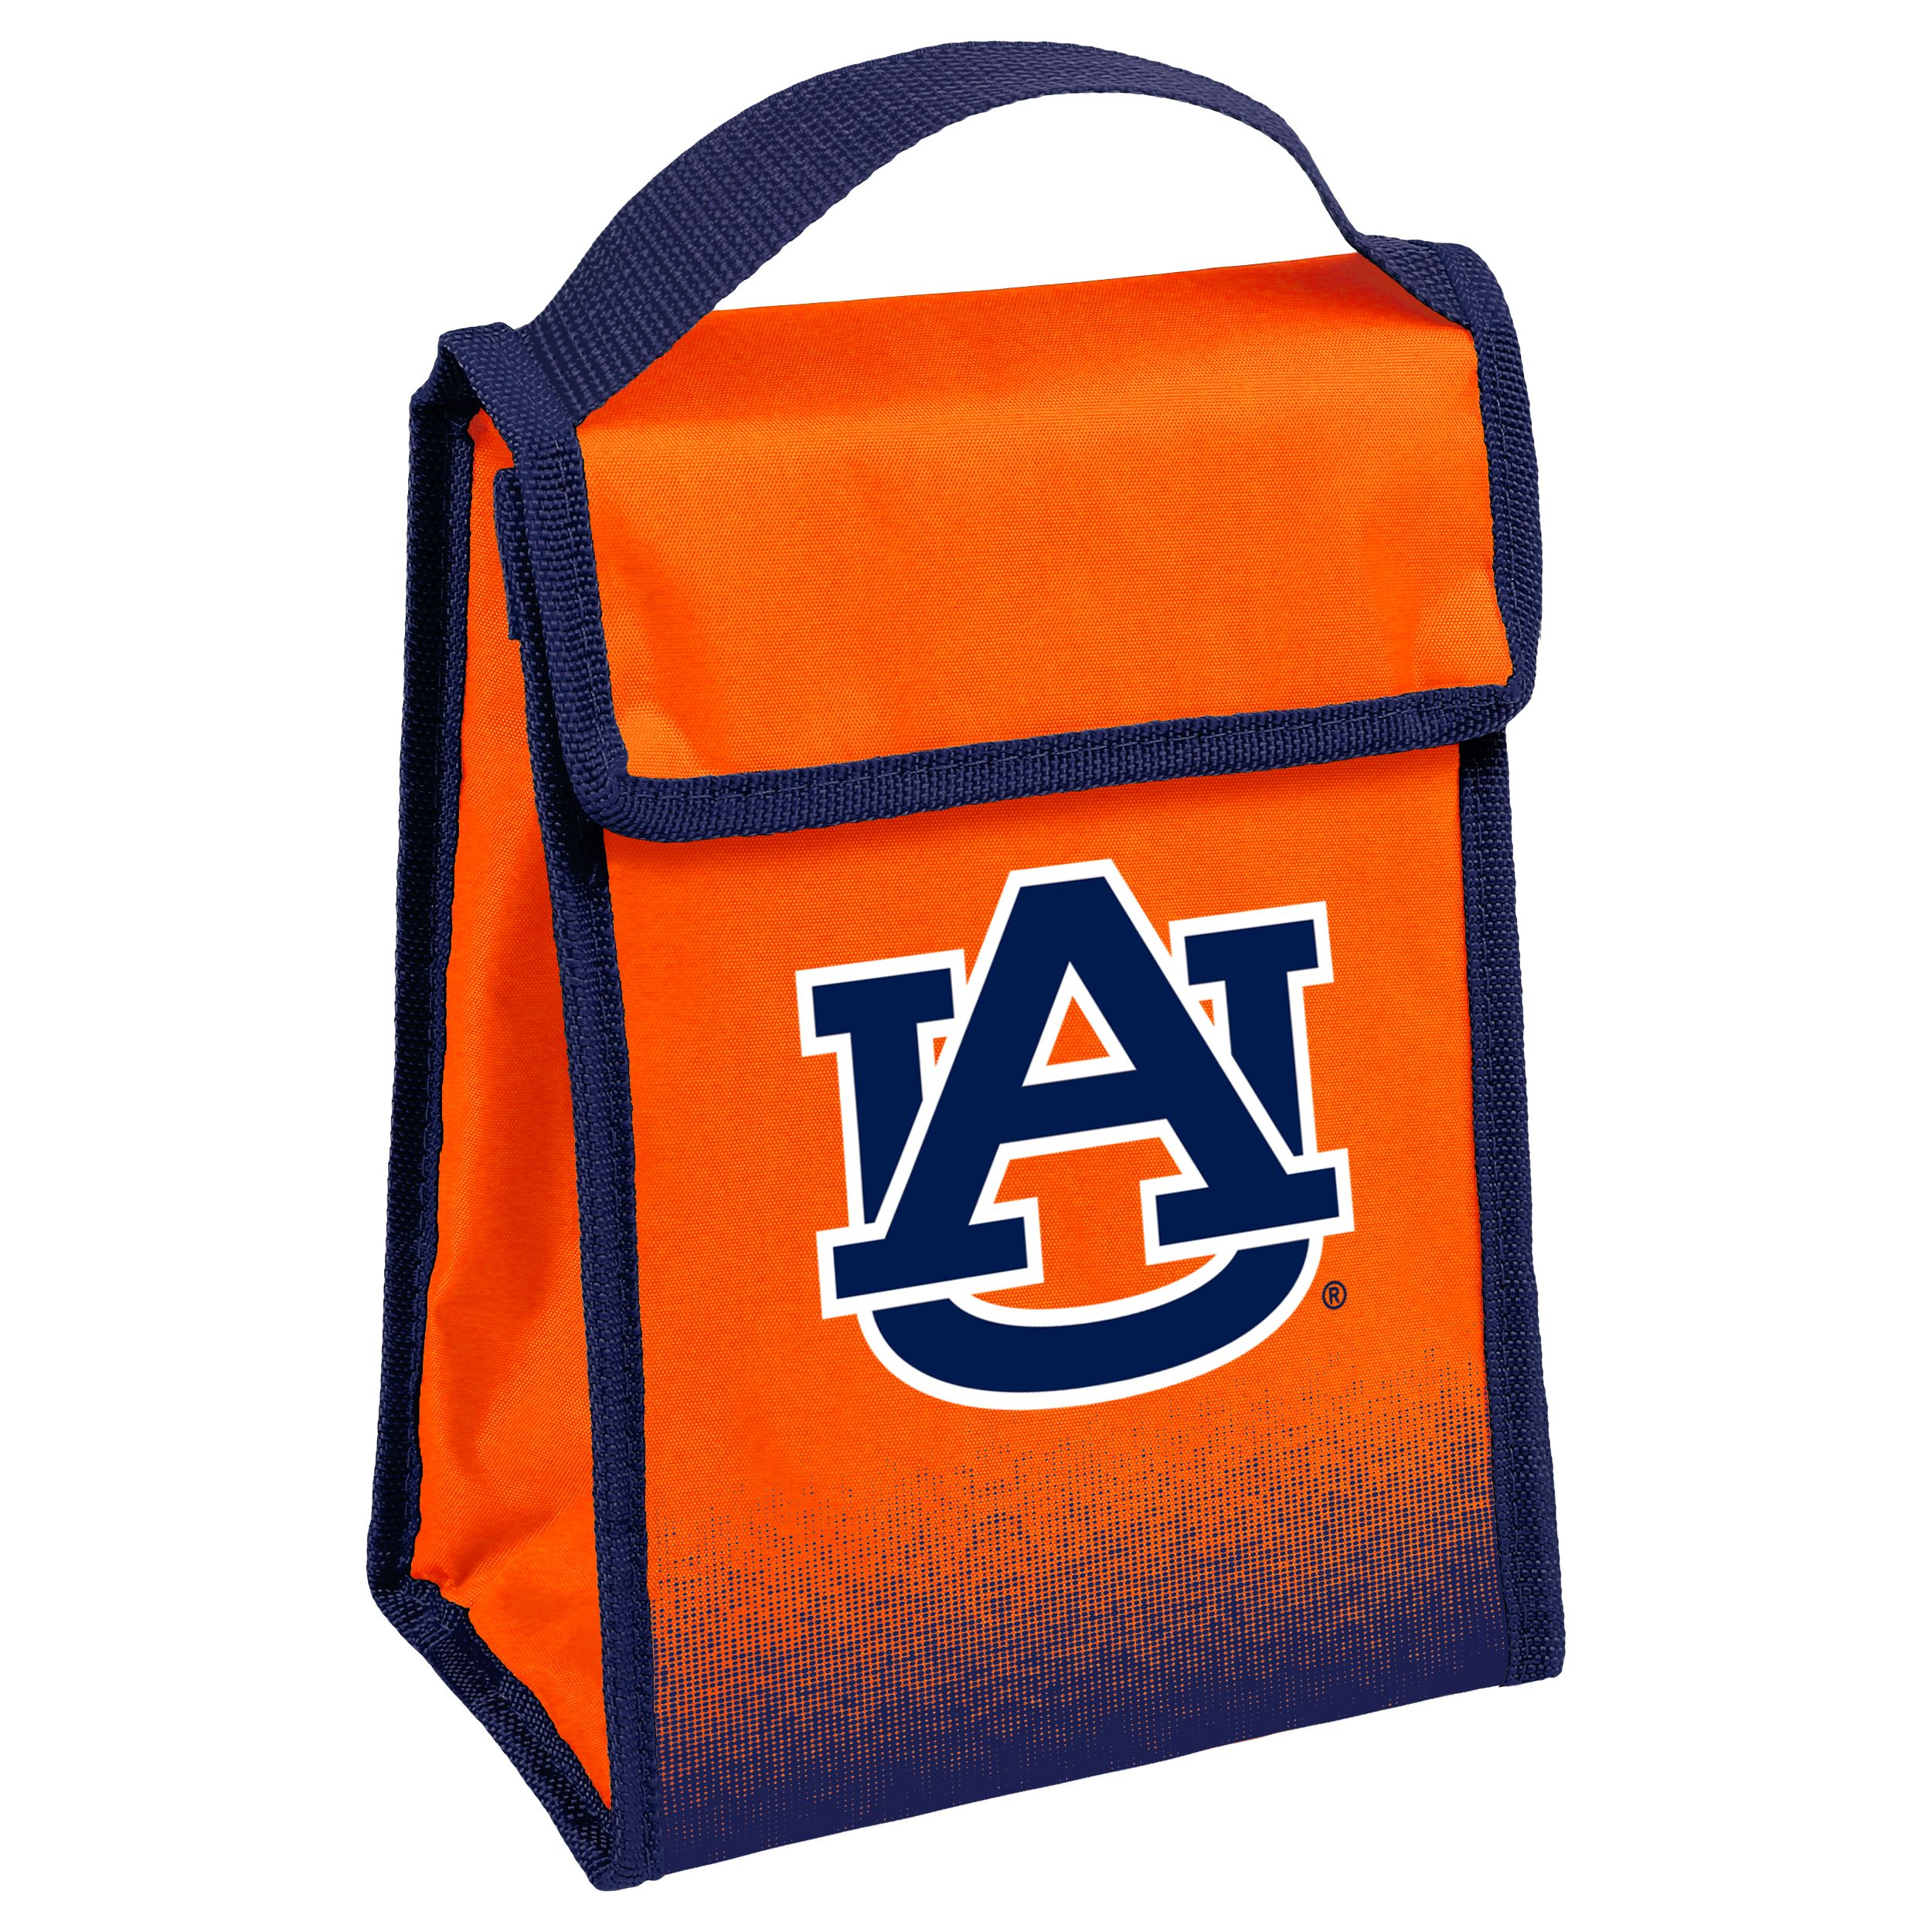 Auburn Tigers Official NCAA Lunch Box Bag by Forever Collectibles 067375